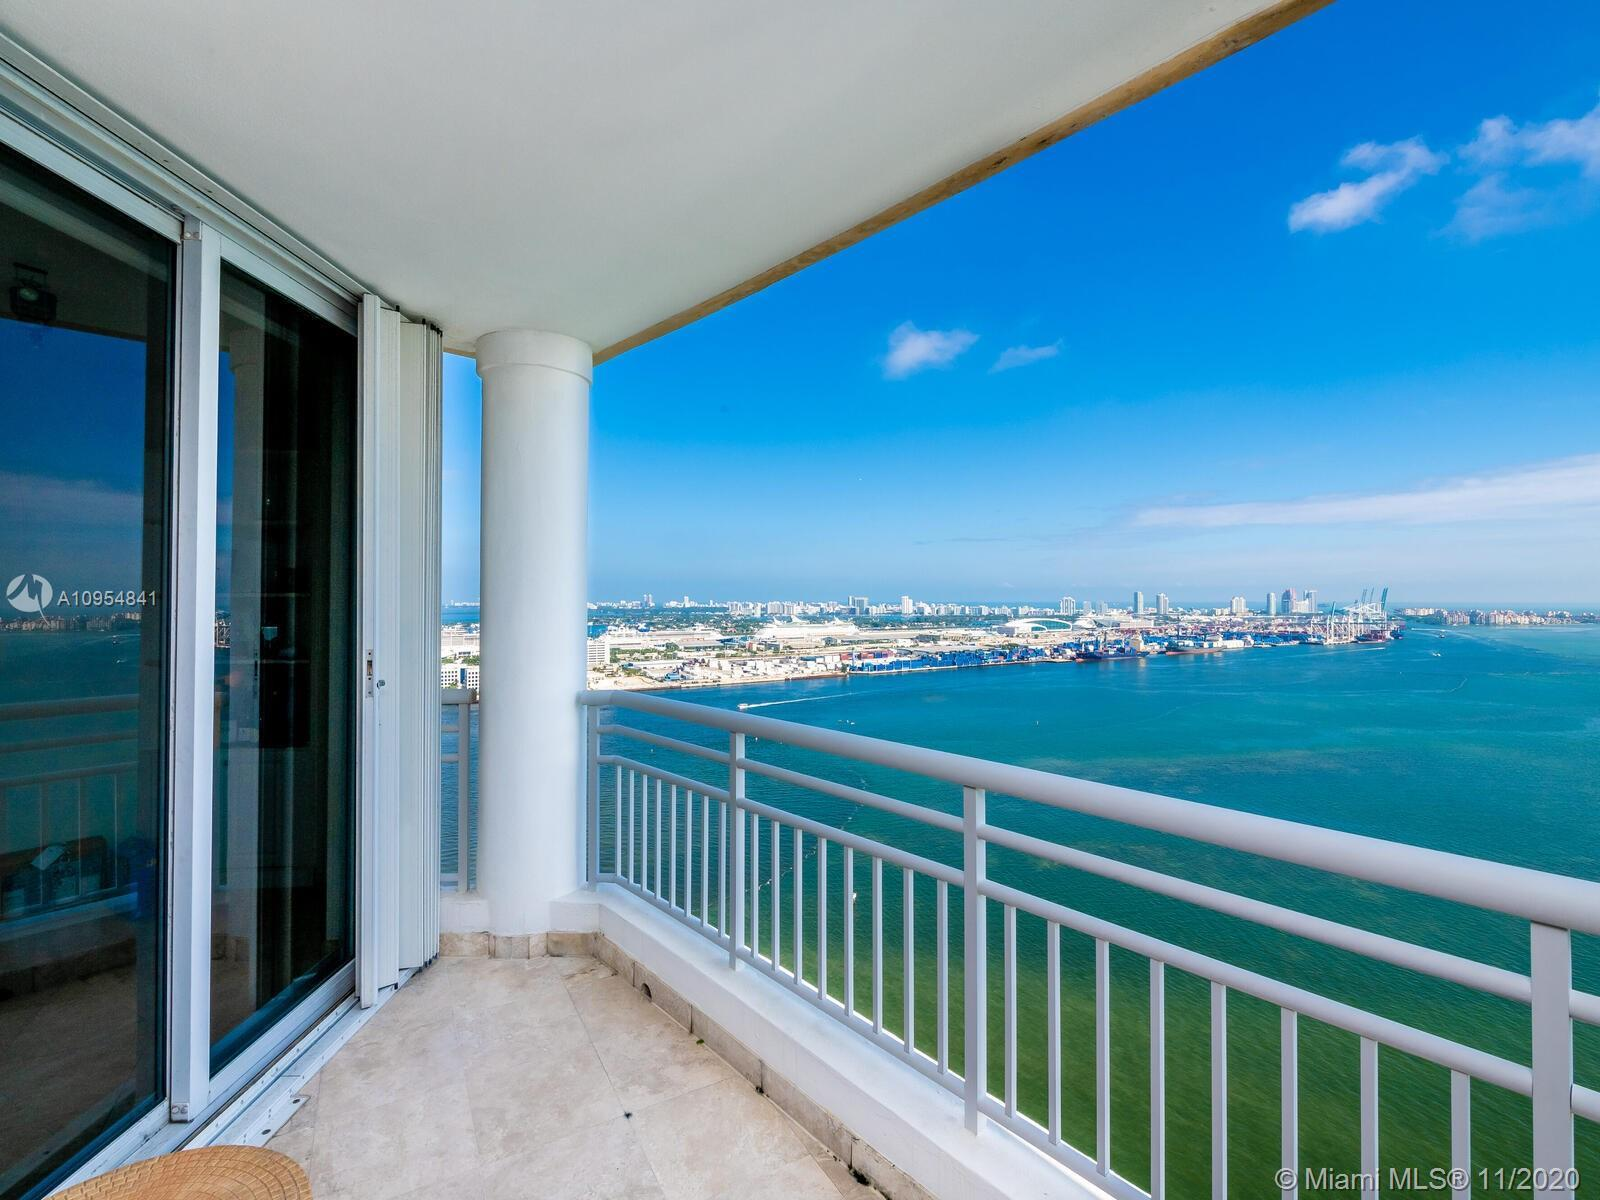 Stunning direct ocean views of Miami Beach, the port of Miami, Key Biscayne and Fisher Island from t